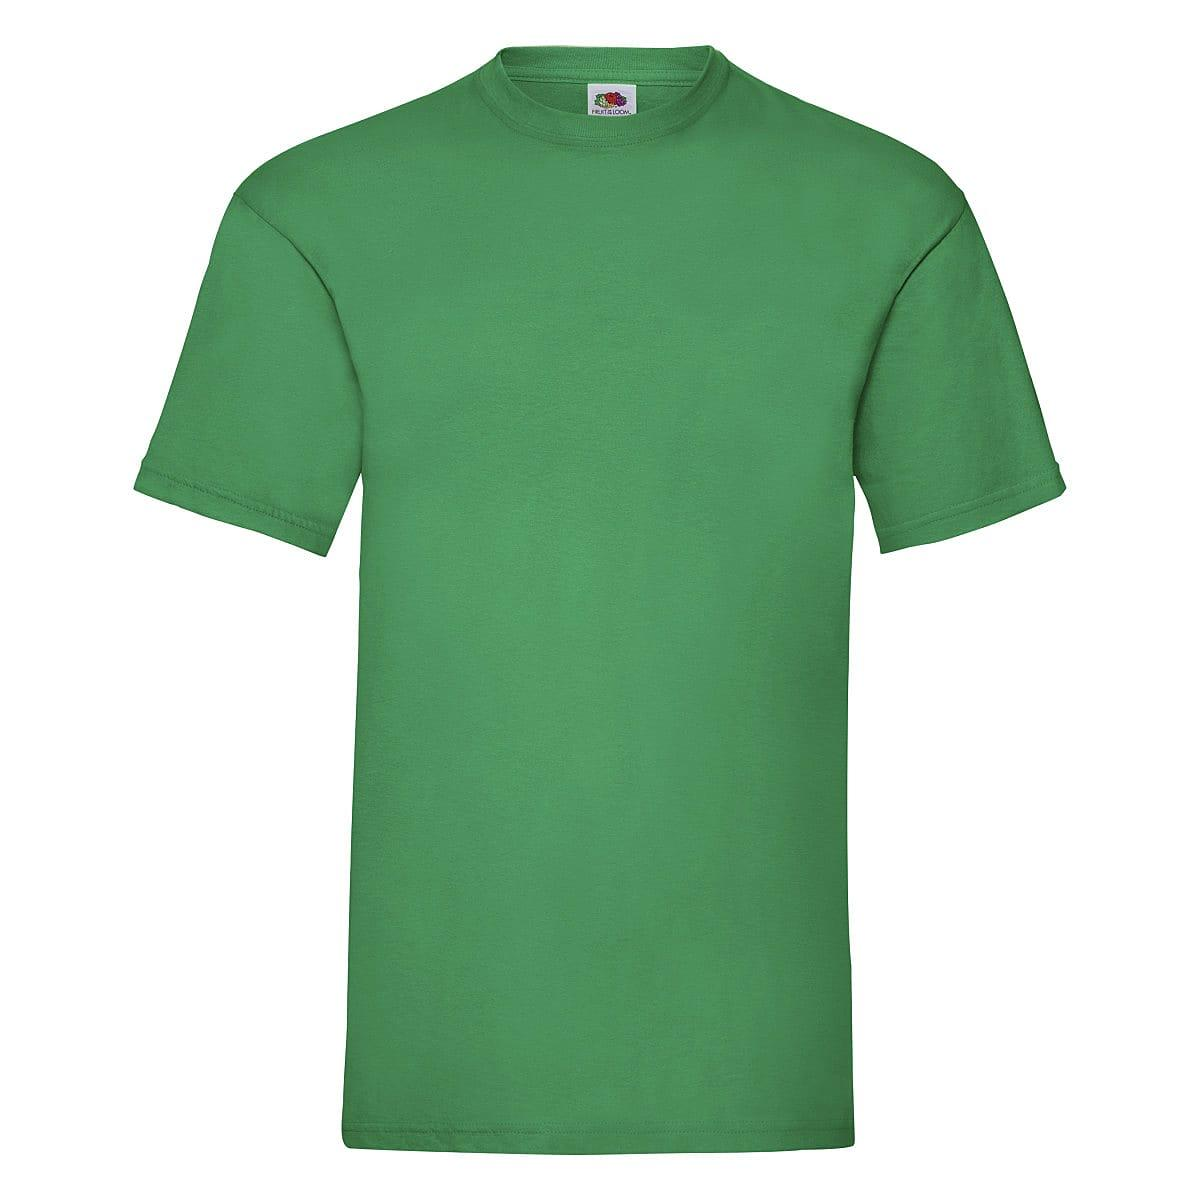 Fruit Of The Loom Valueweight T-Shirt in Kelly Green (Product Code: 61036)